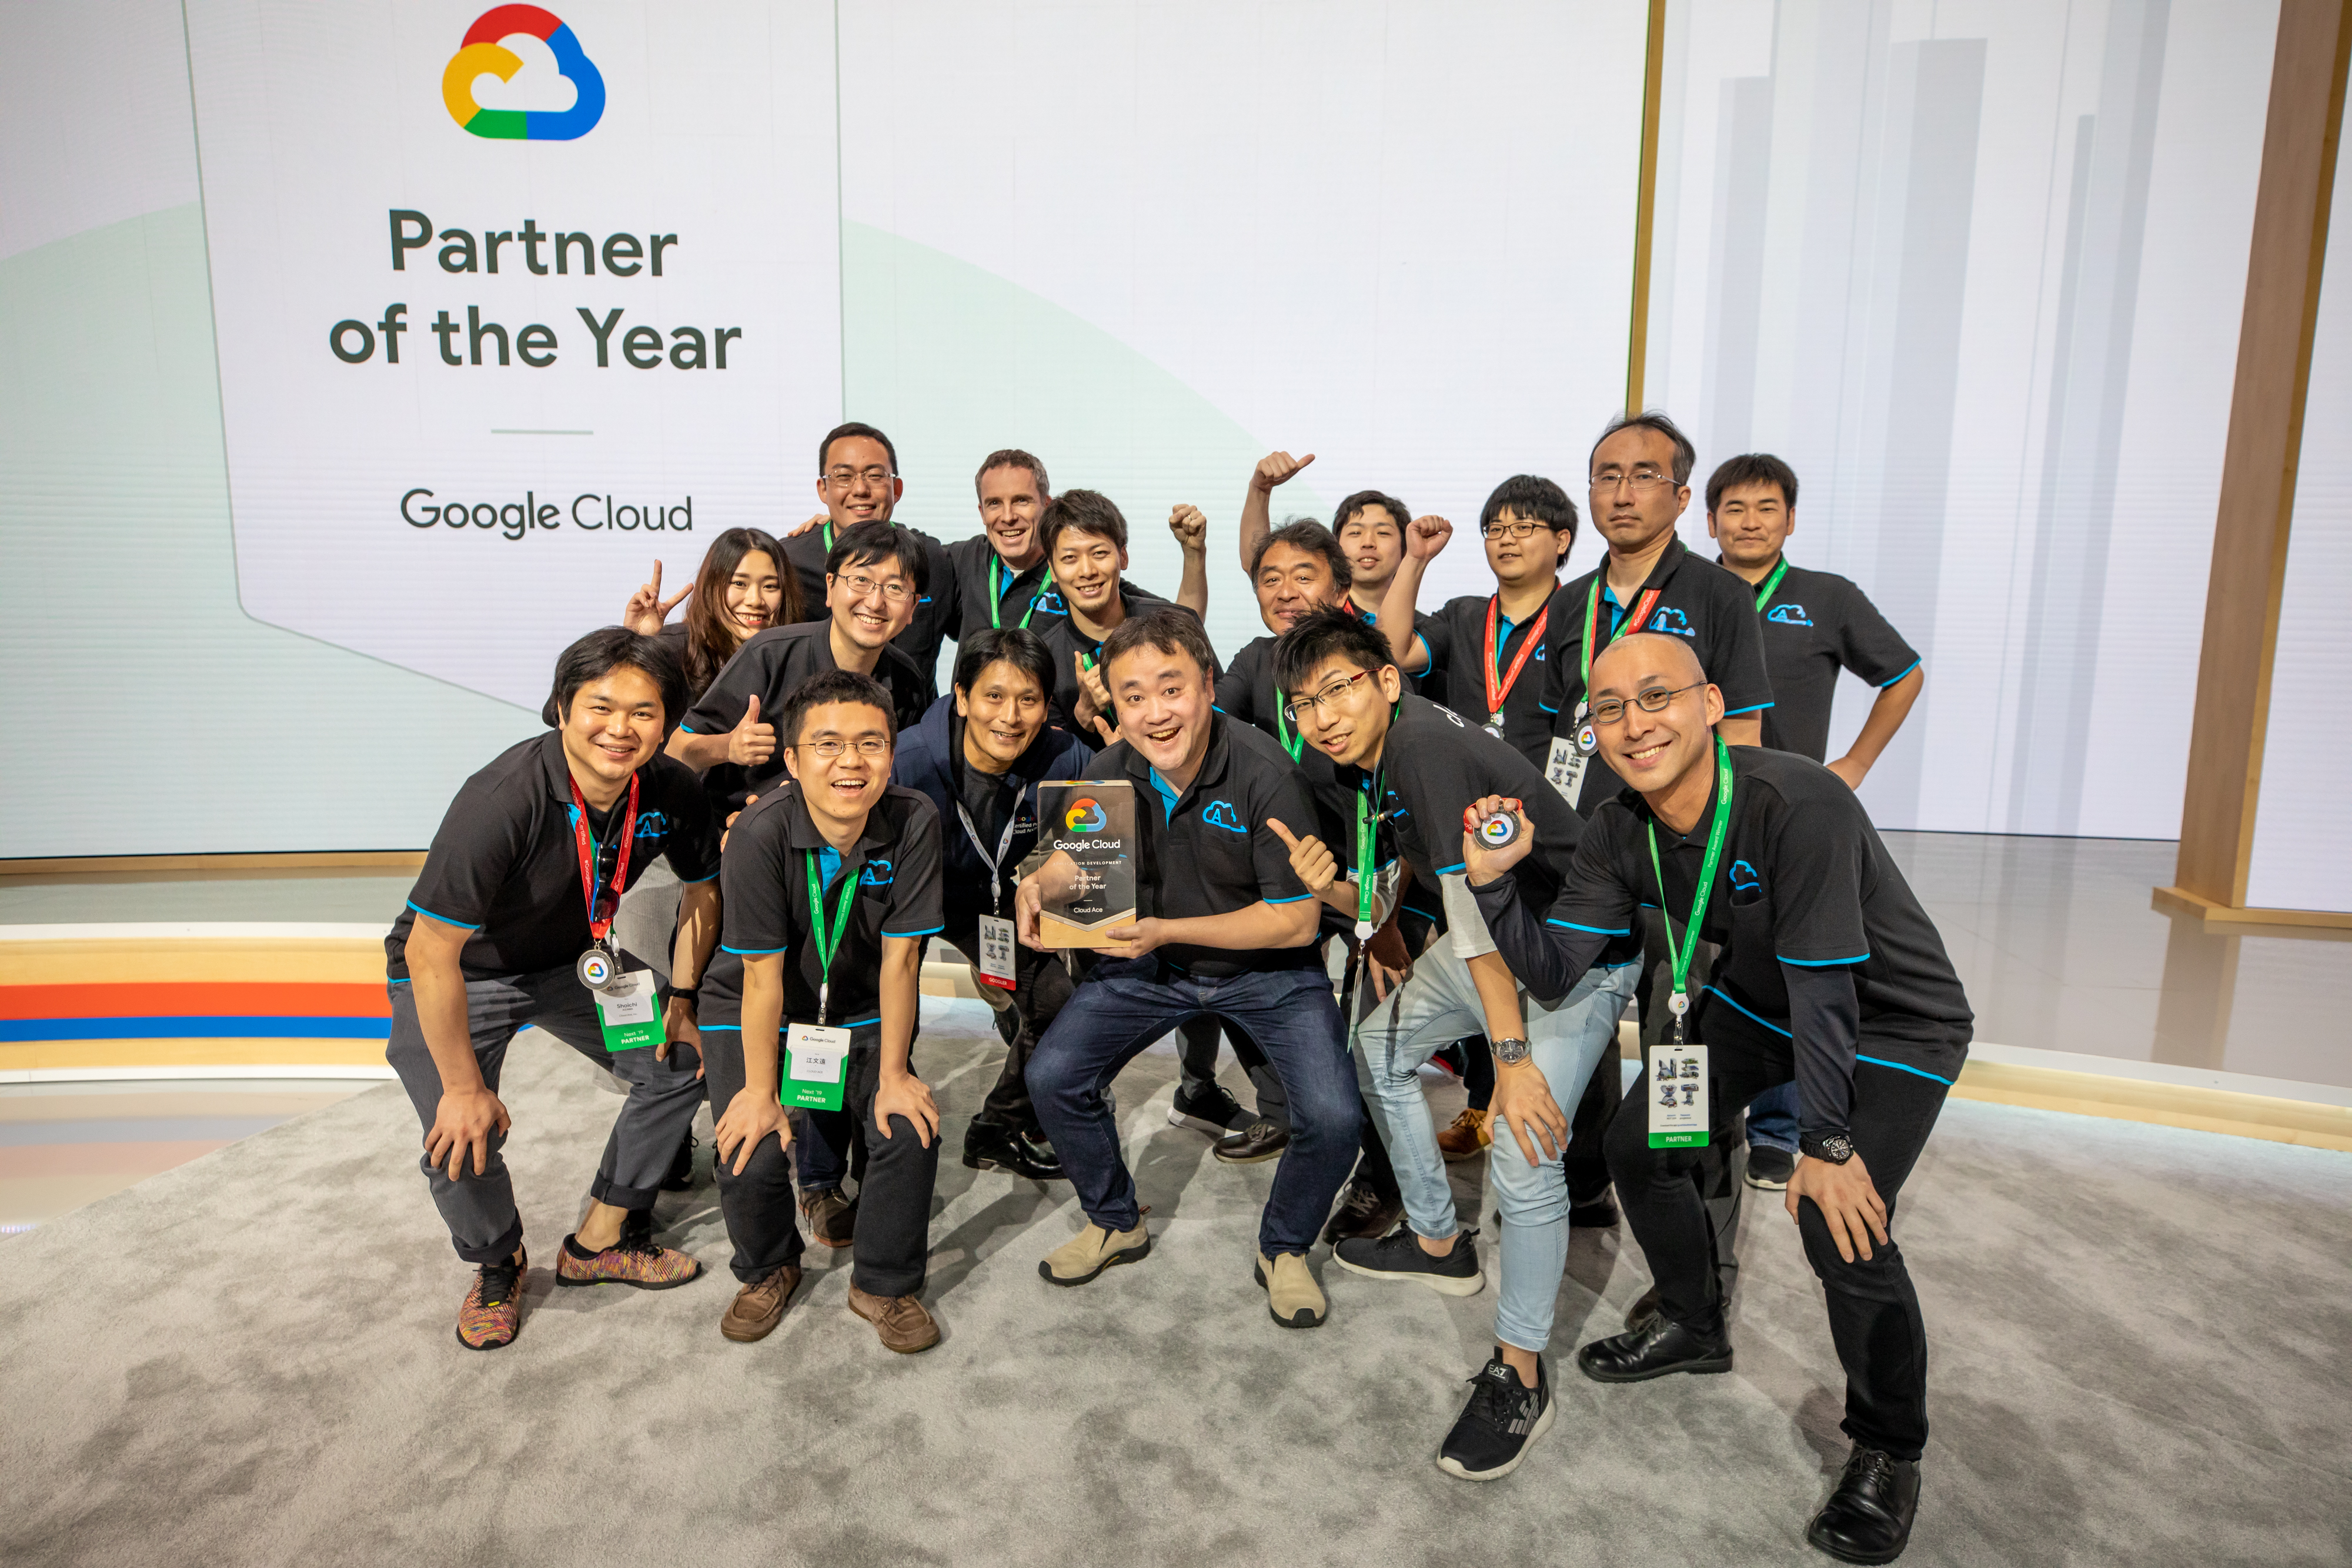 Cloud Ace group photo at Google Next 19 winning the Partner of the year award for Cloud Application Development